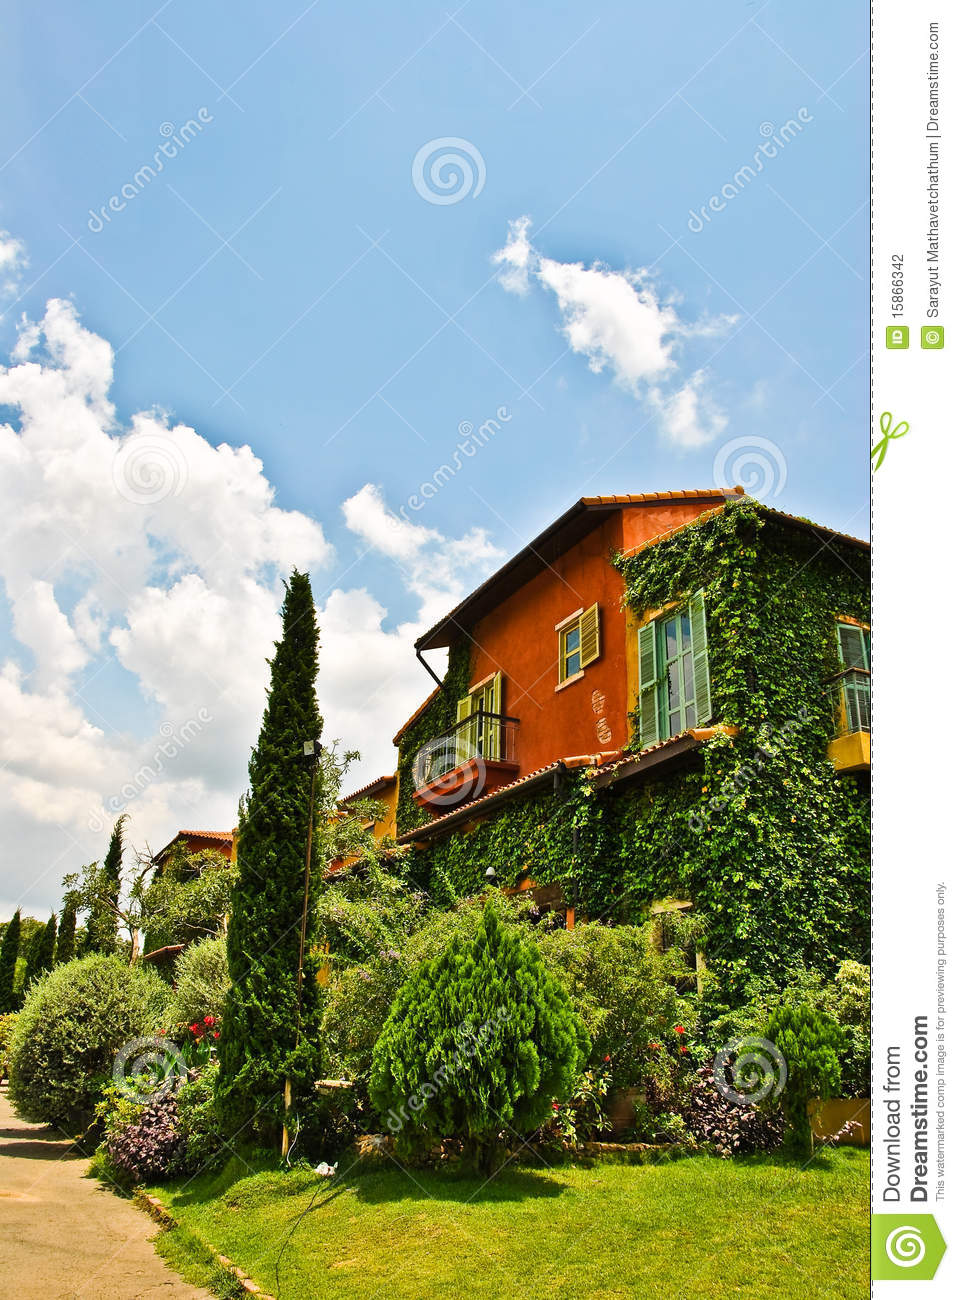 Colorful tree house stock photography image 15866342 for Colorful tree house